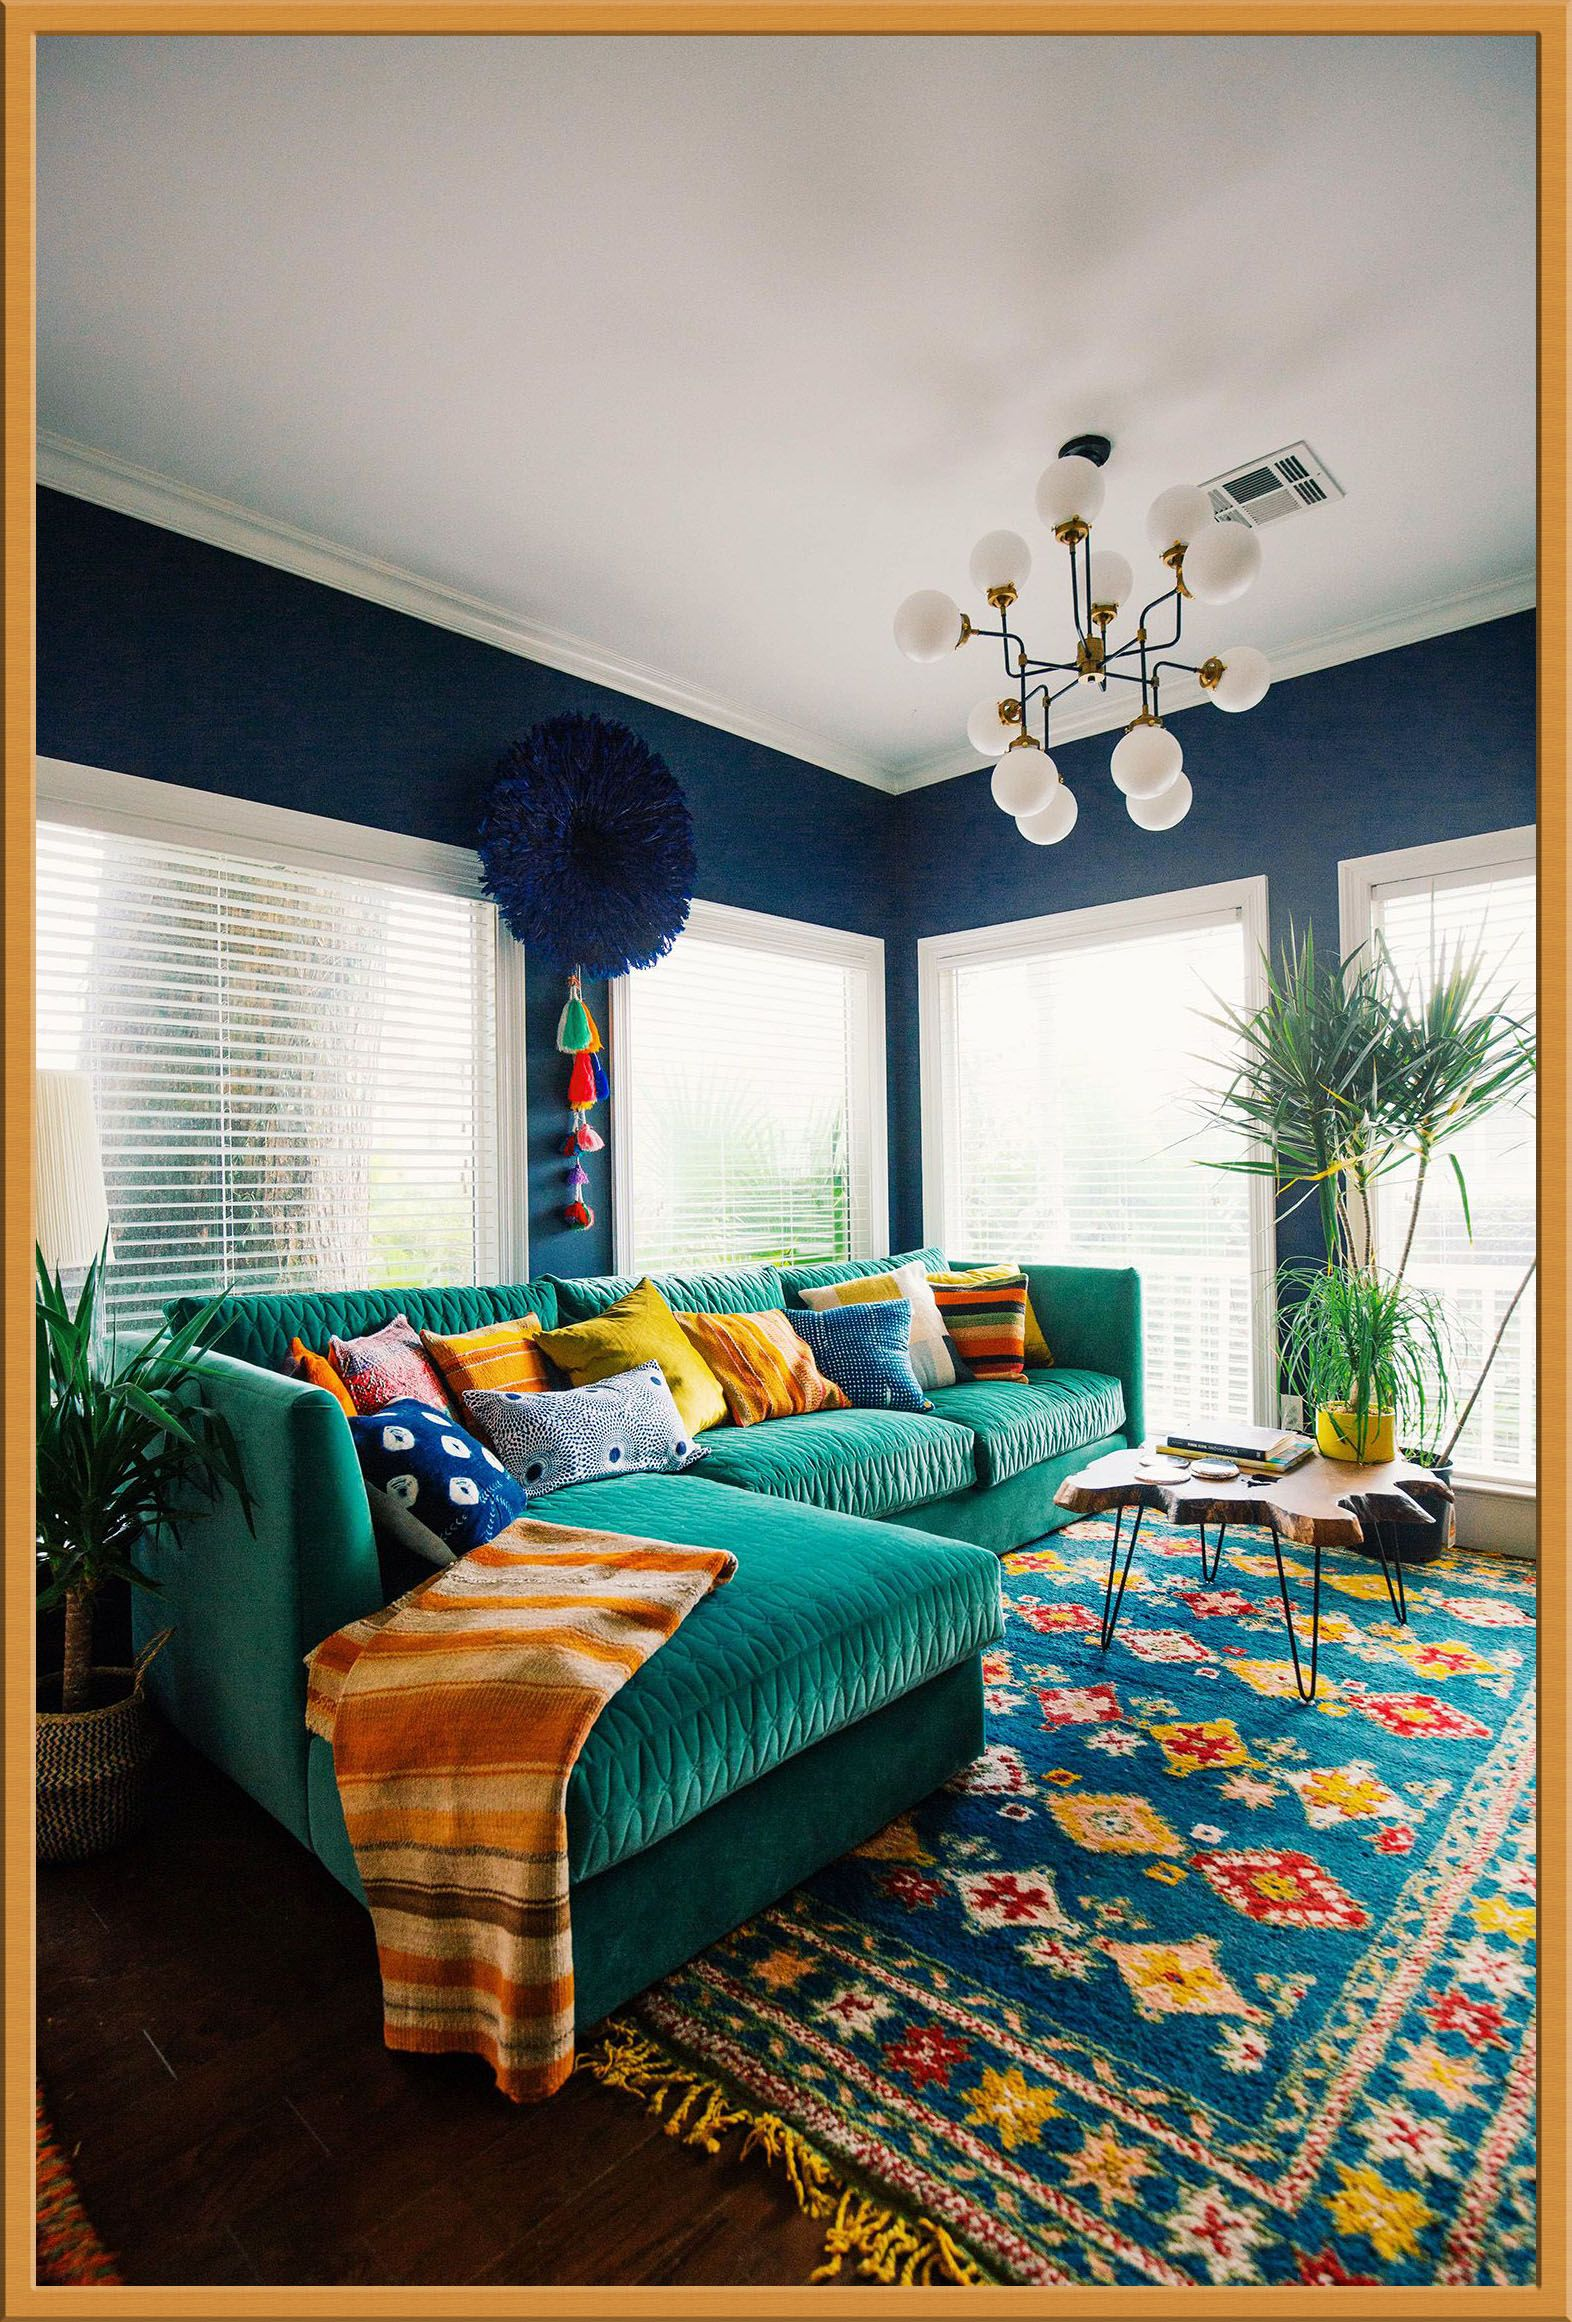 Revolutionize Your Bohemian Homedecor With These Easy-peasy Tips